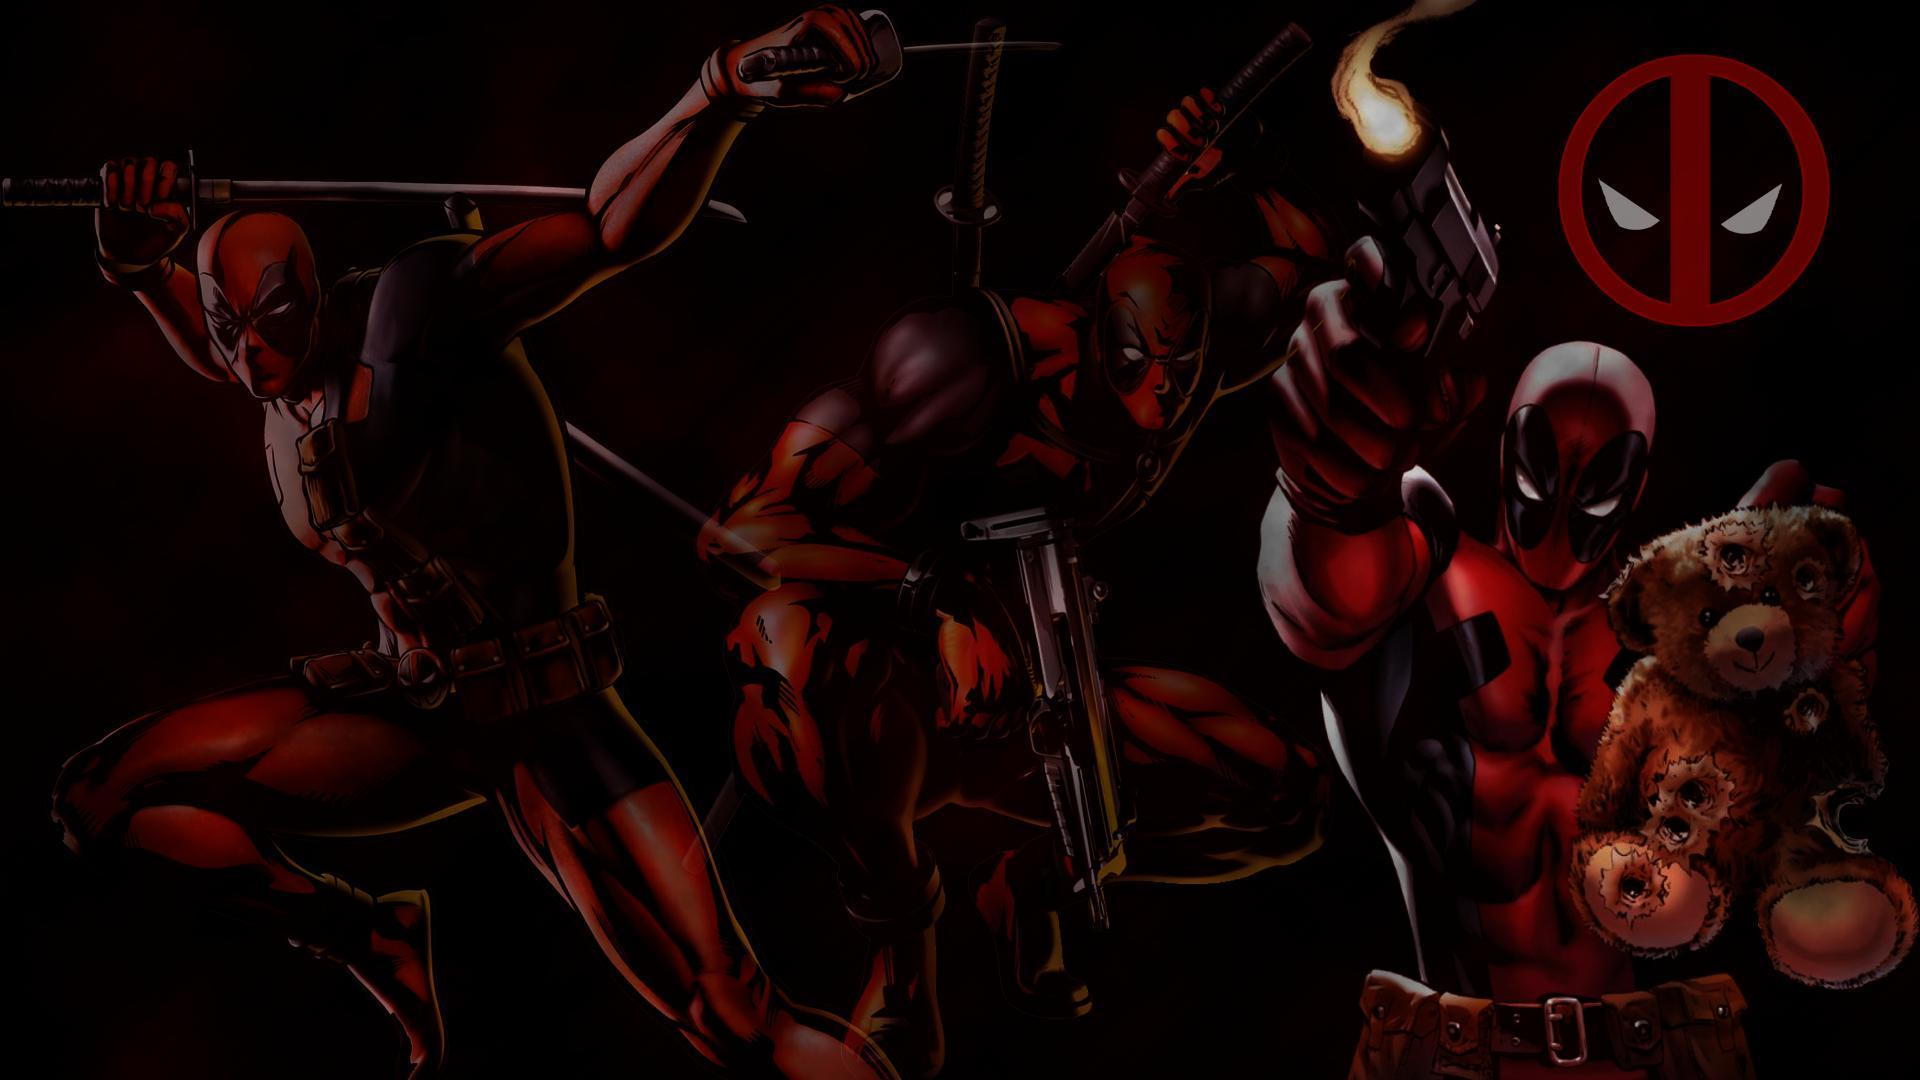 956 deadpool wallpapers movies - photo #42